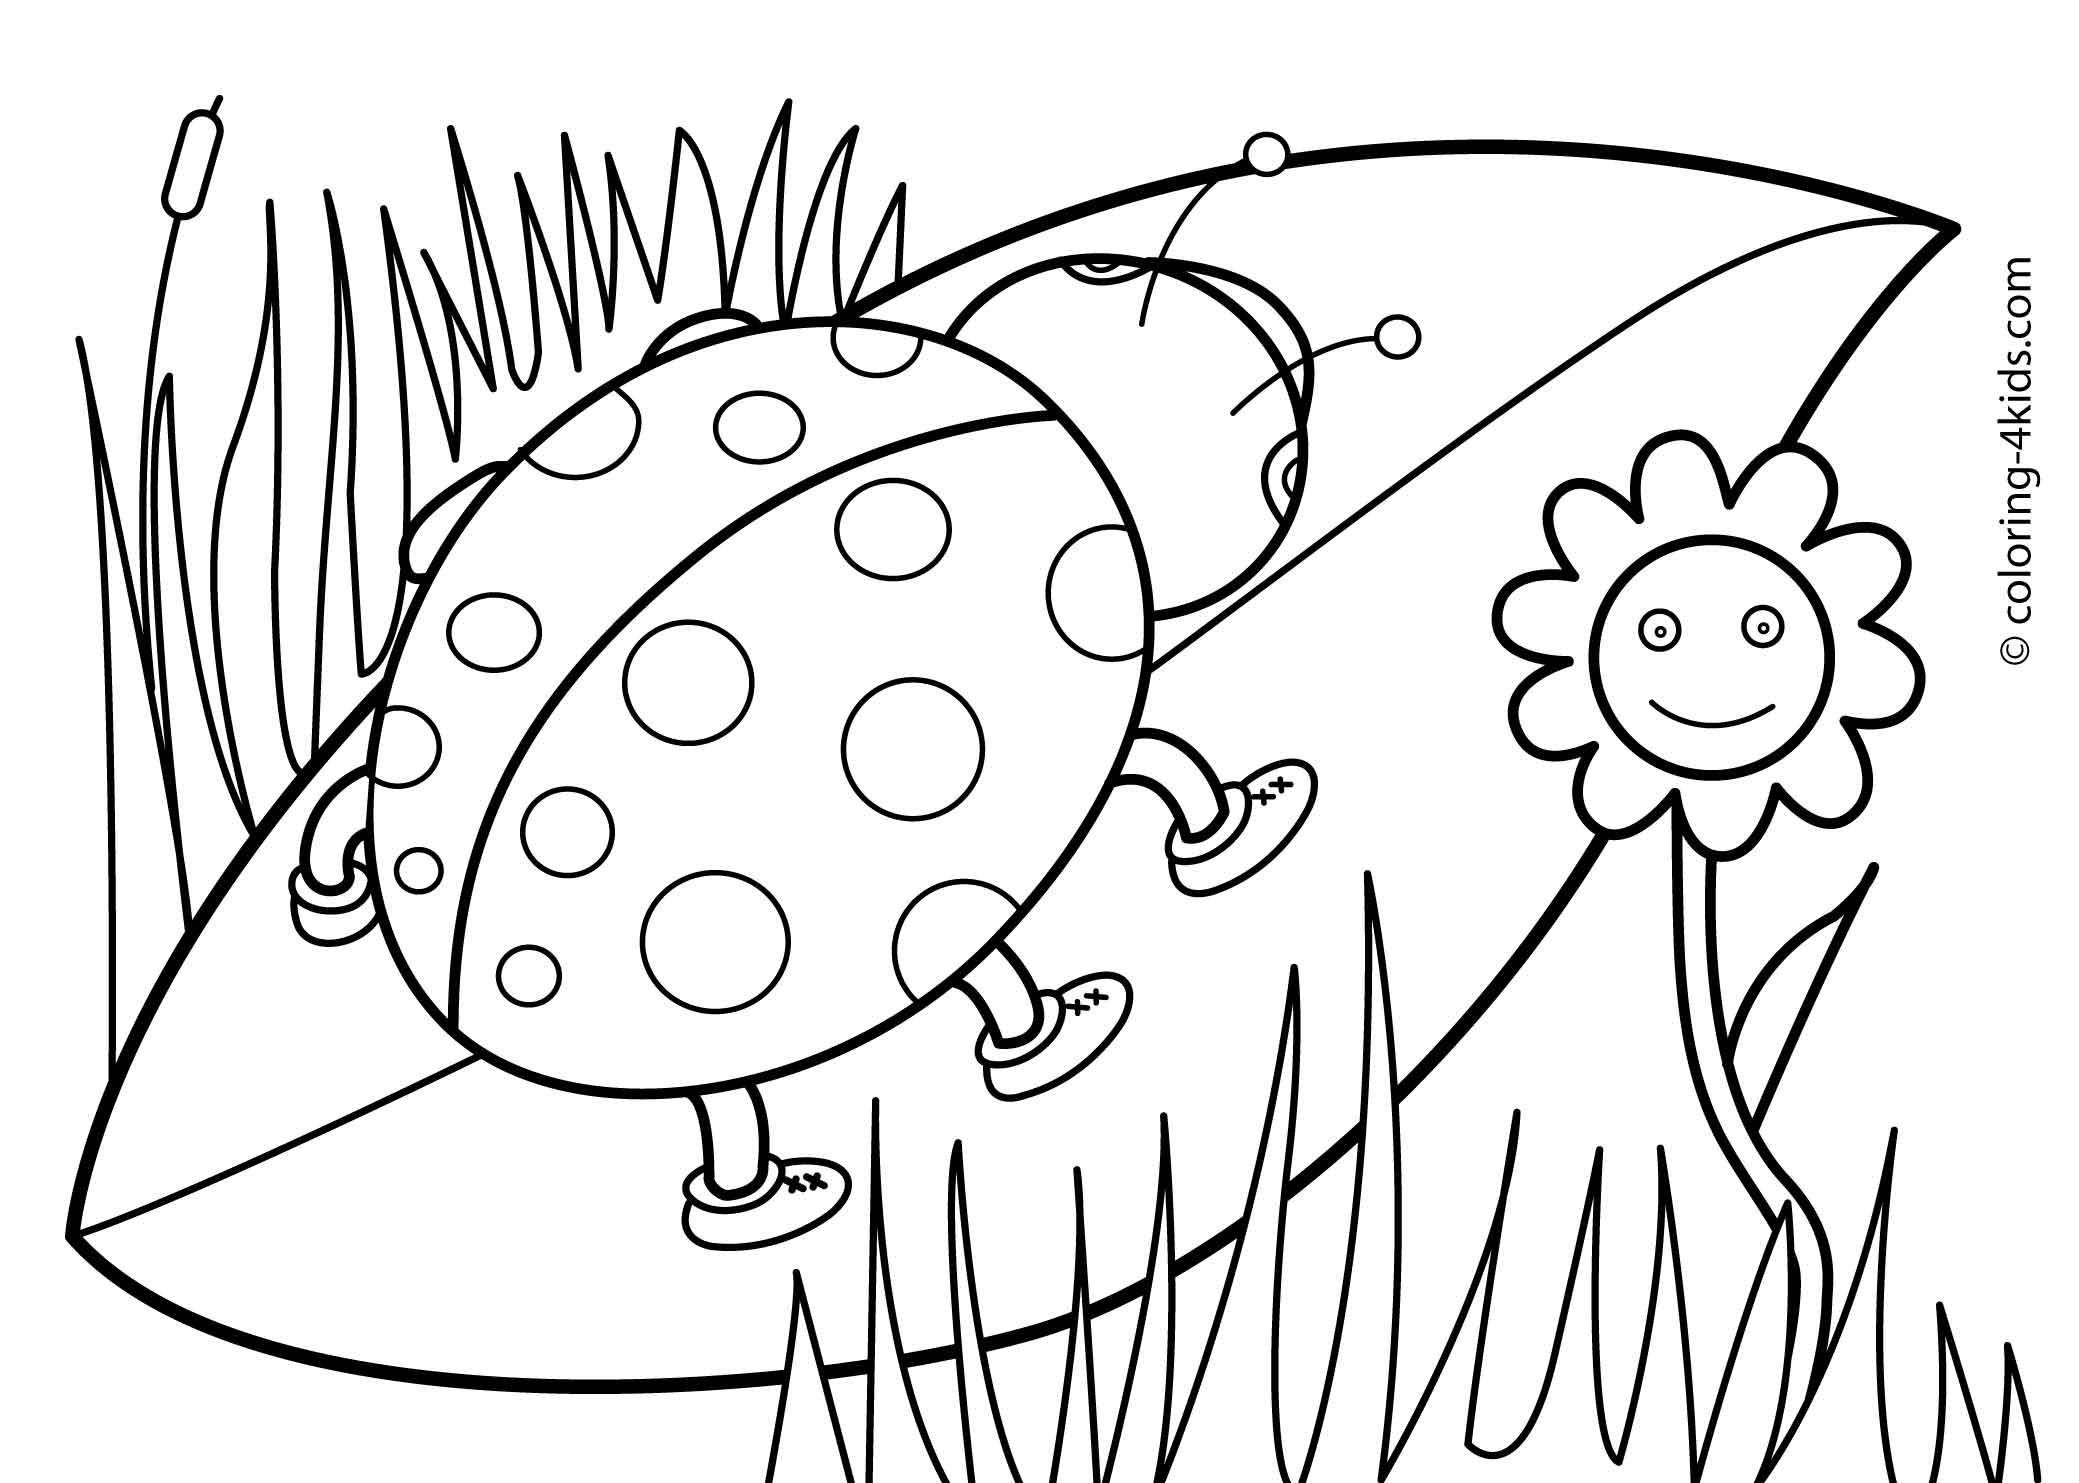 Free Spring Coloring Pages, Download Free Clip Art, Free Clip Art On - Free Printable Spring Pictures To Color